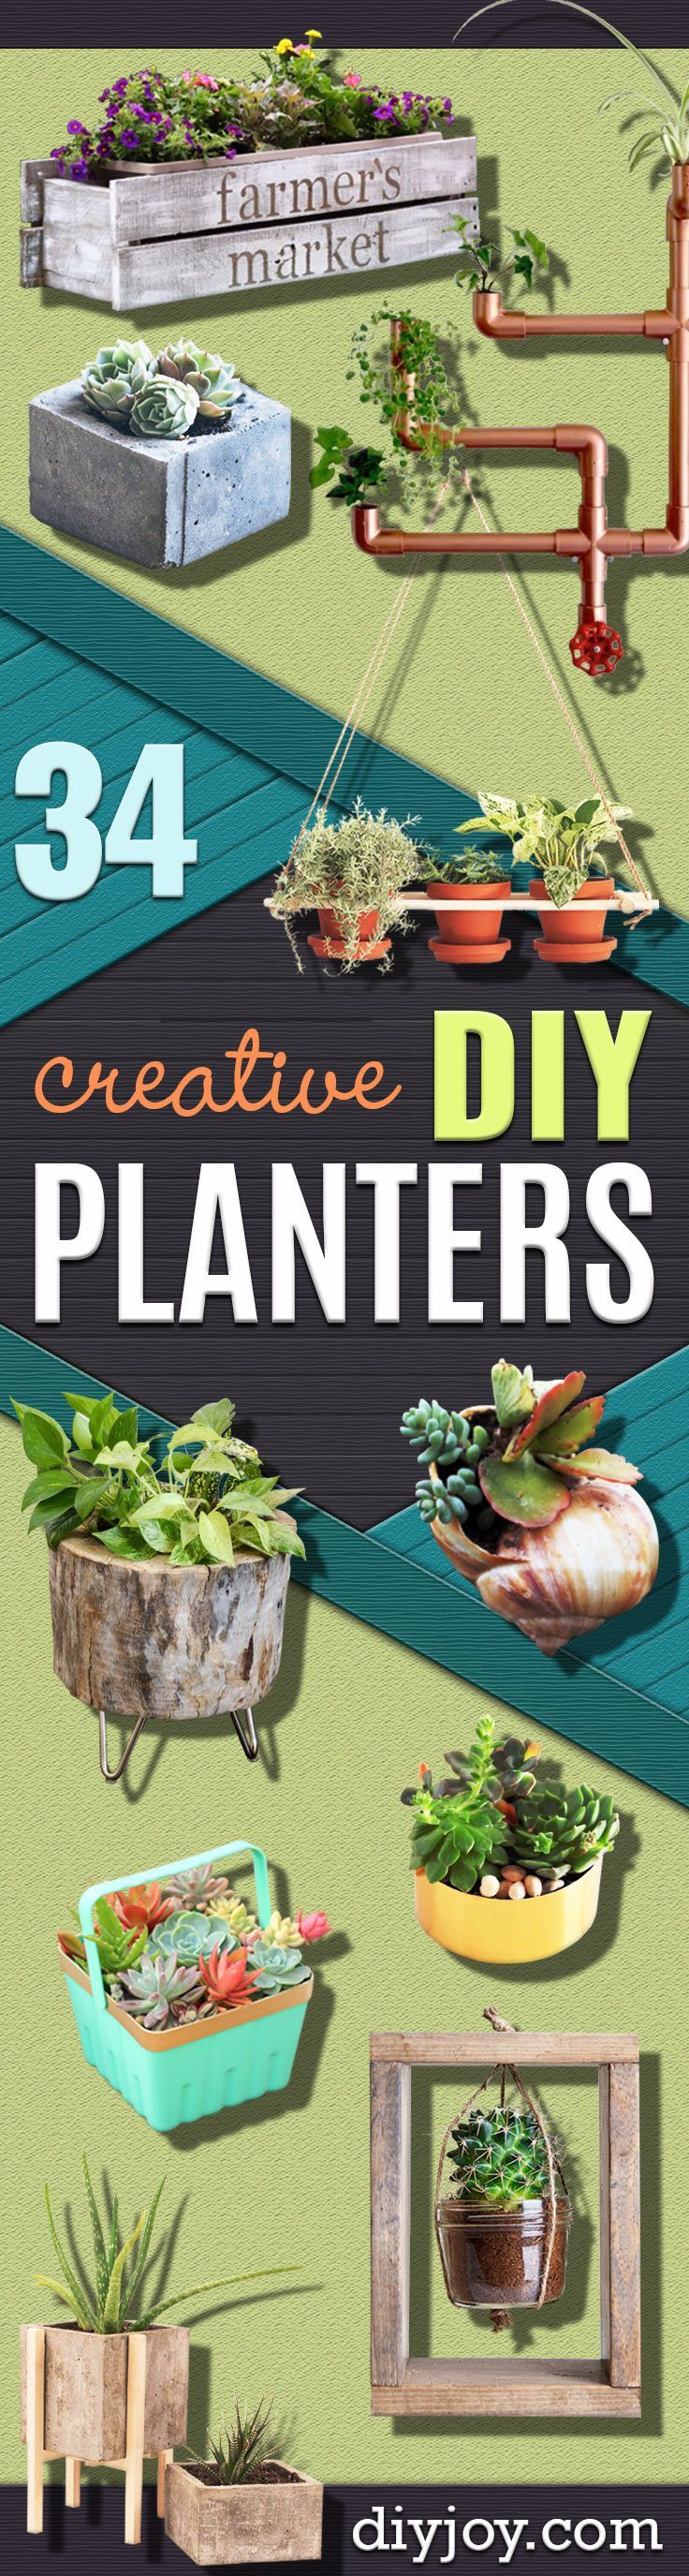 Creative DIY Planters -Best Do It Yourself Planters and Crafts You Can Make For Your Plants - Indoor and Outdoor Gardening Ideas - Cool Modern and Rustic Home and Room Decor for Planting With Step by Step Tutorials